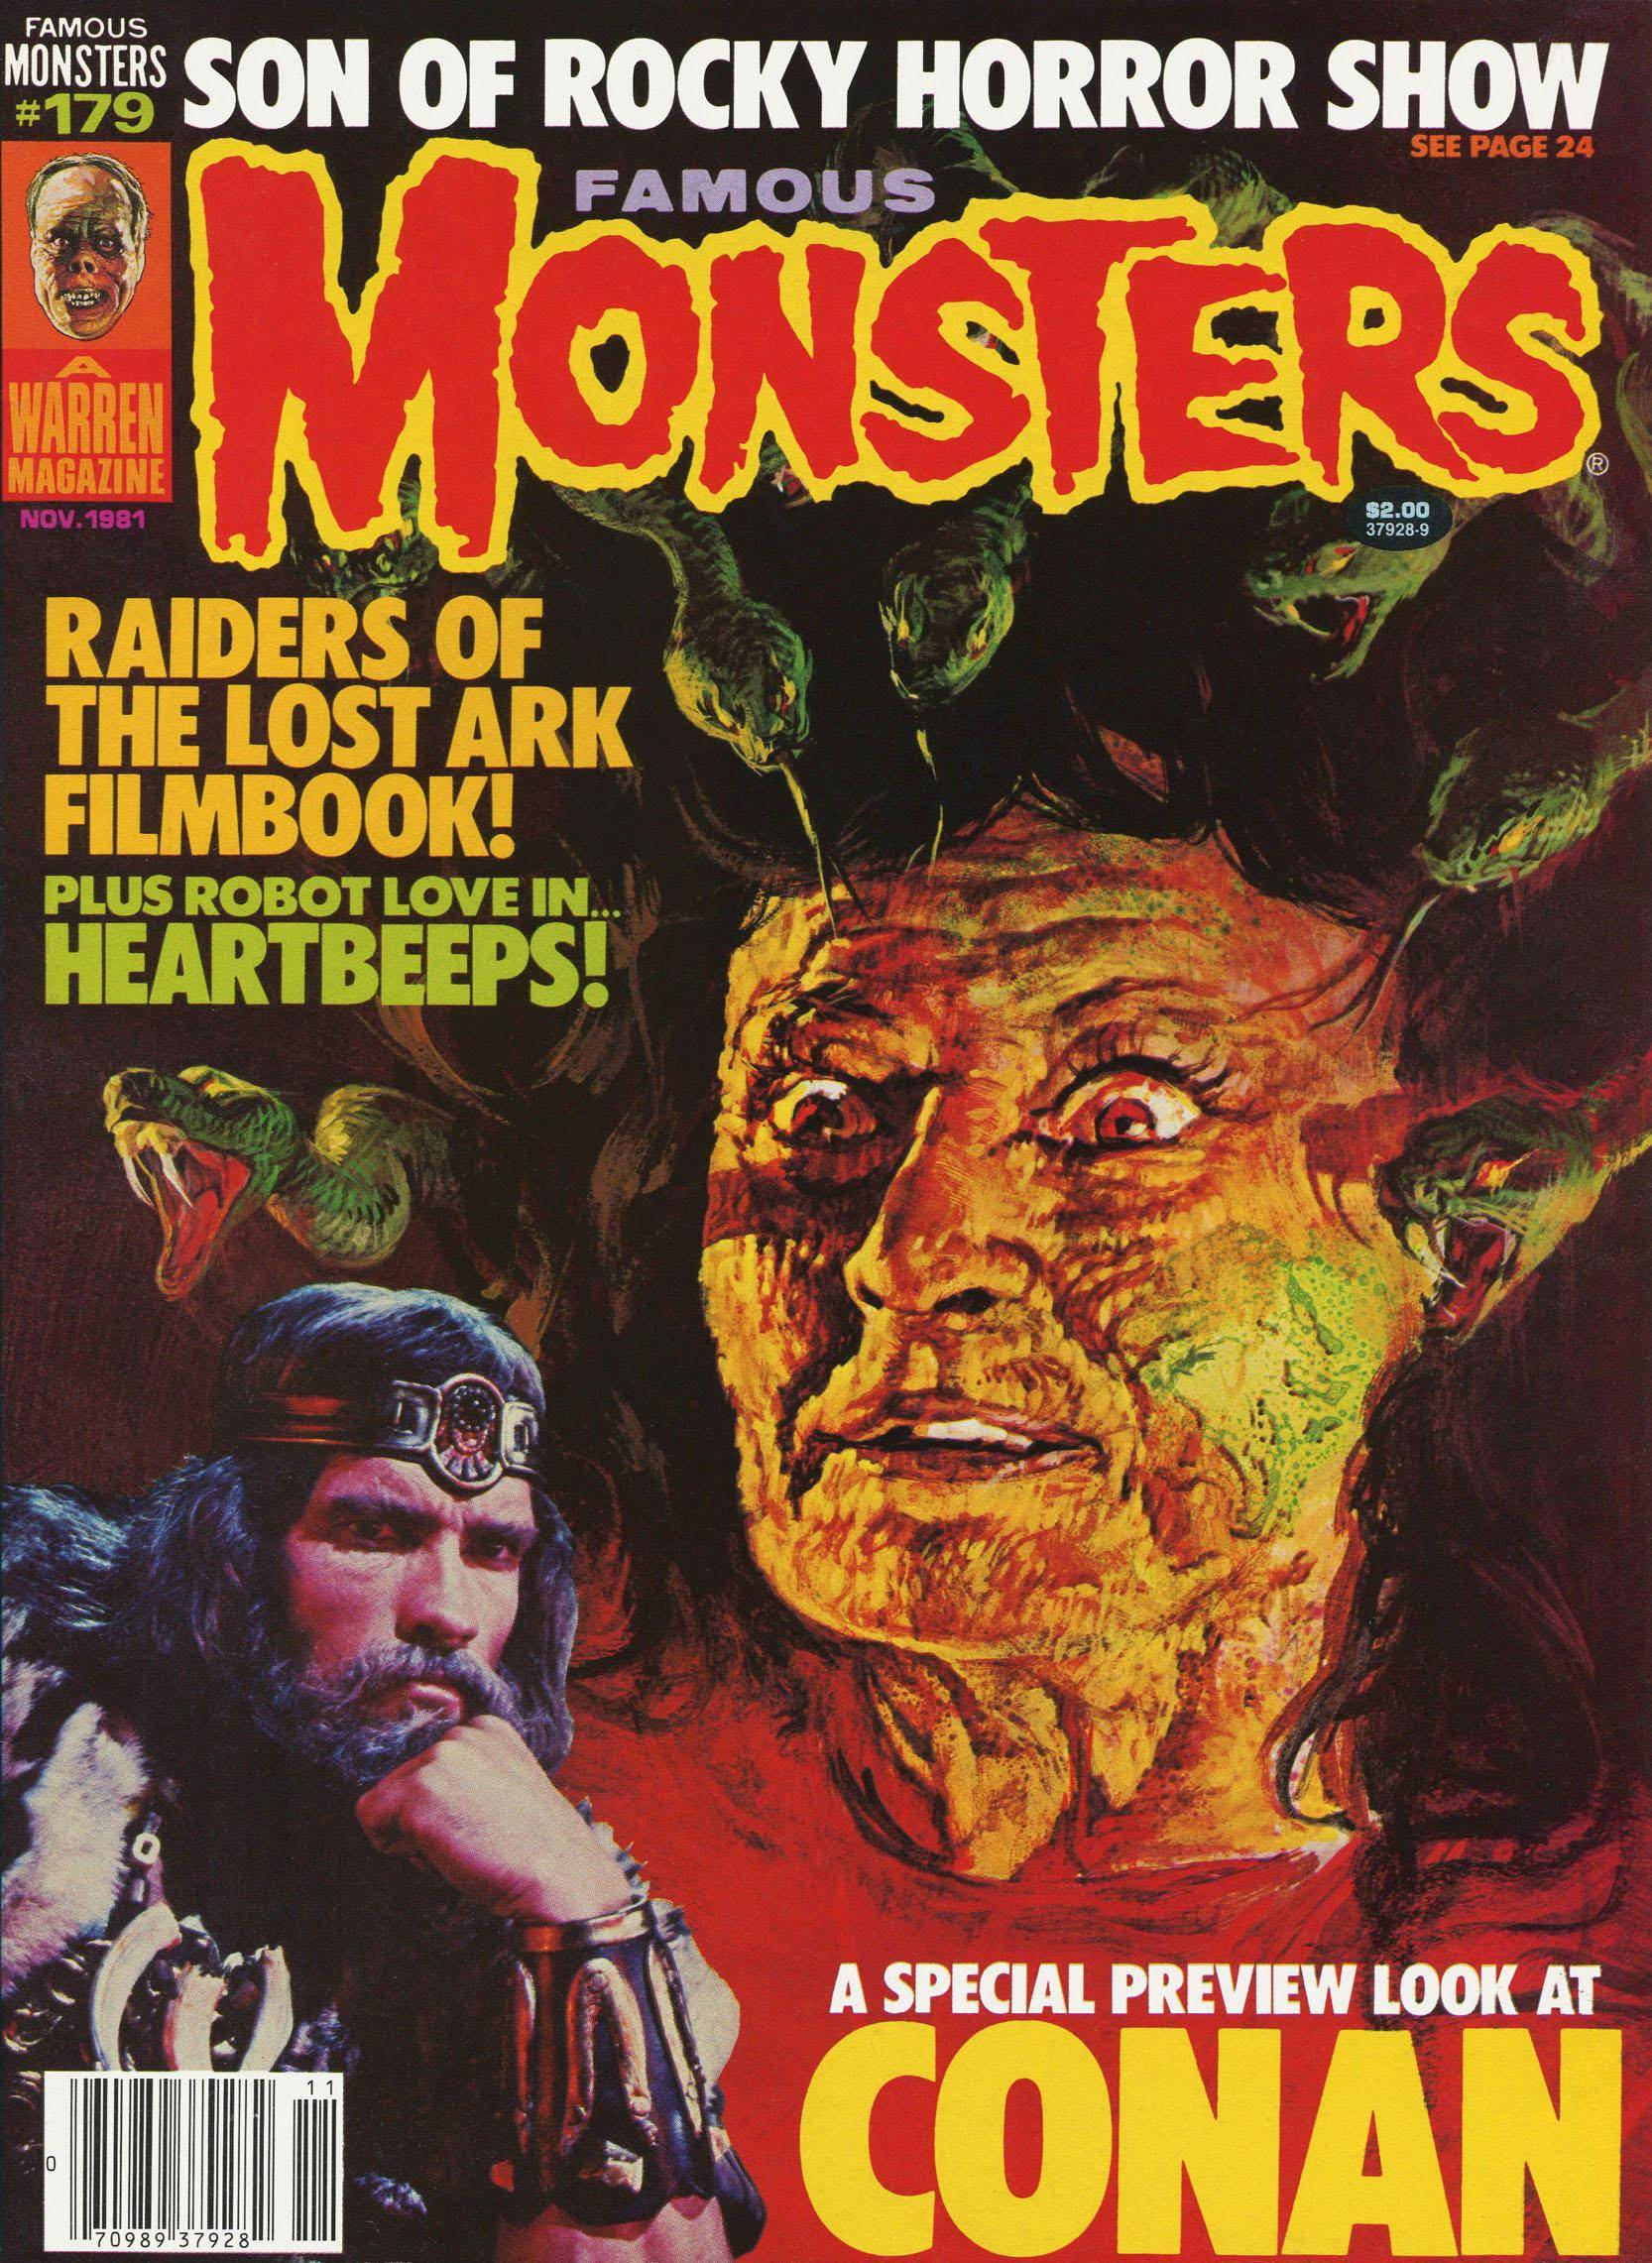 Famous Monsters of Filmland 179